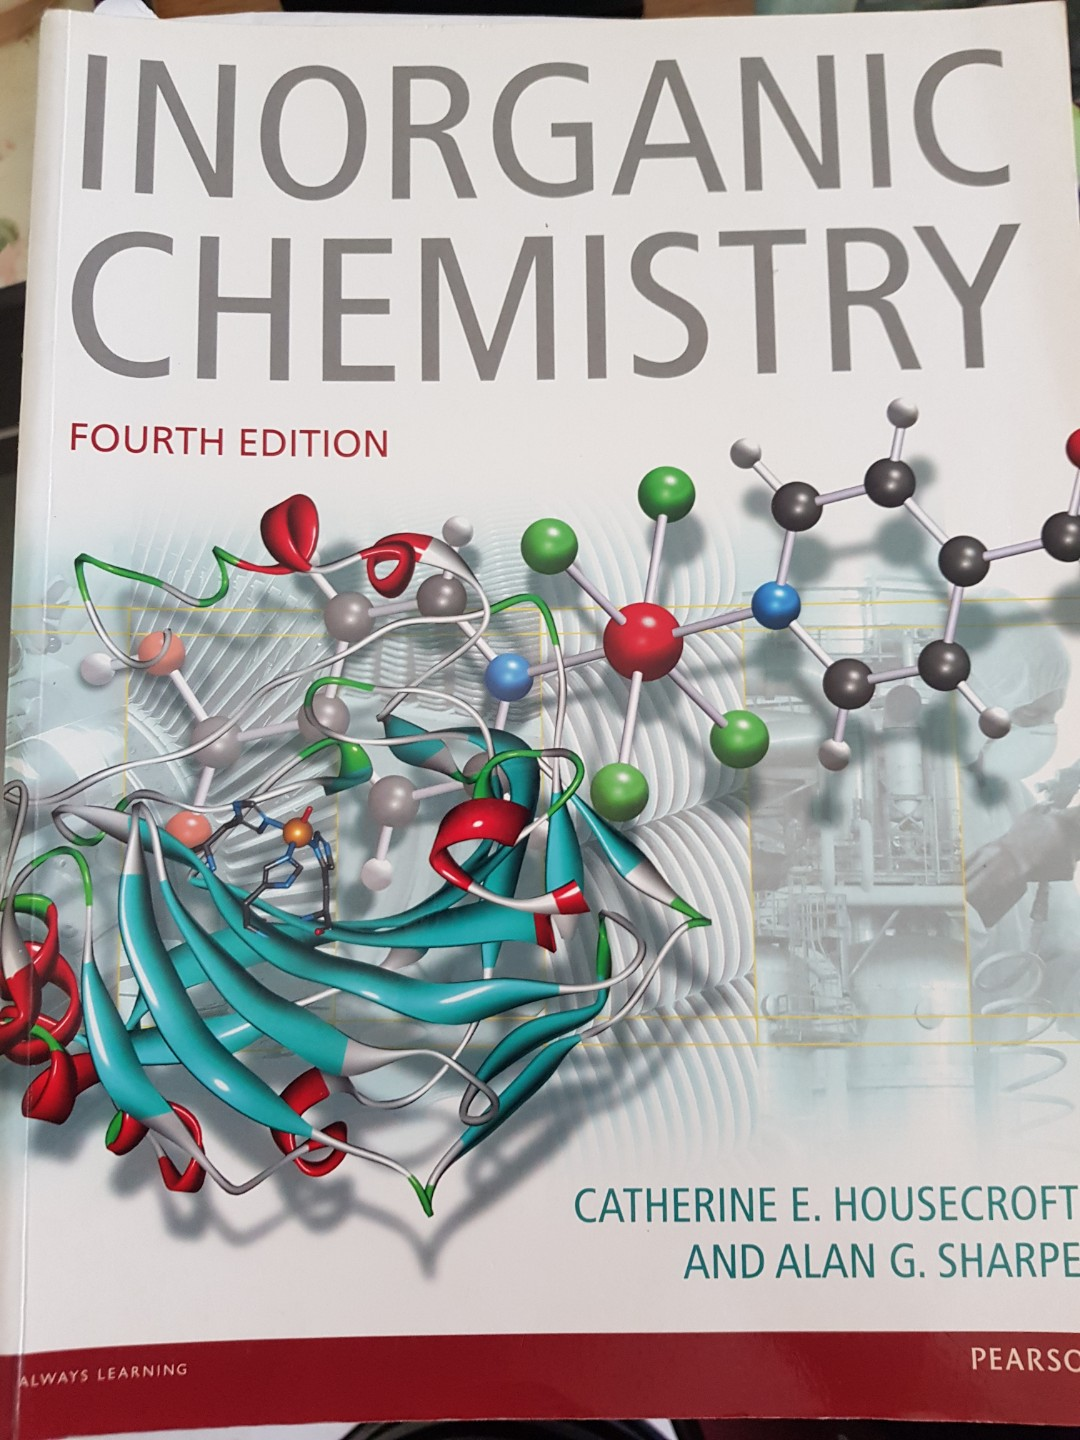 Inorganic chemistry for cm 1111, Books & Stationery, Textbooks,  Professional Studies on Carousell